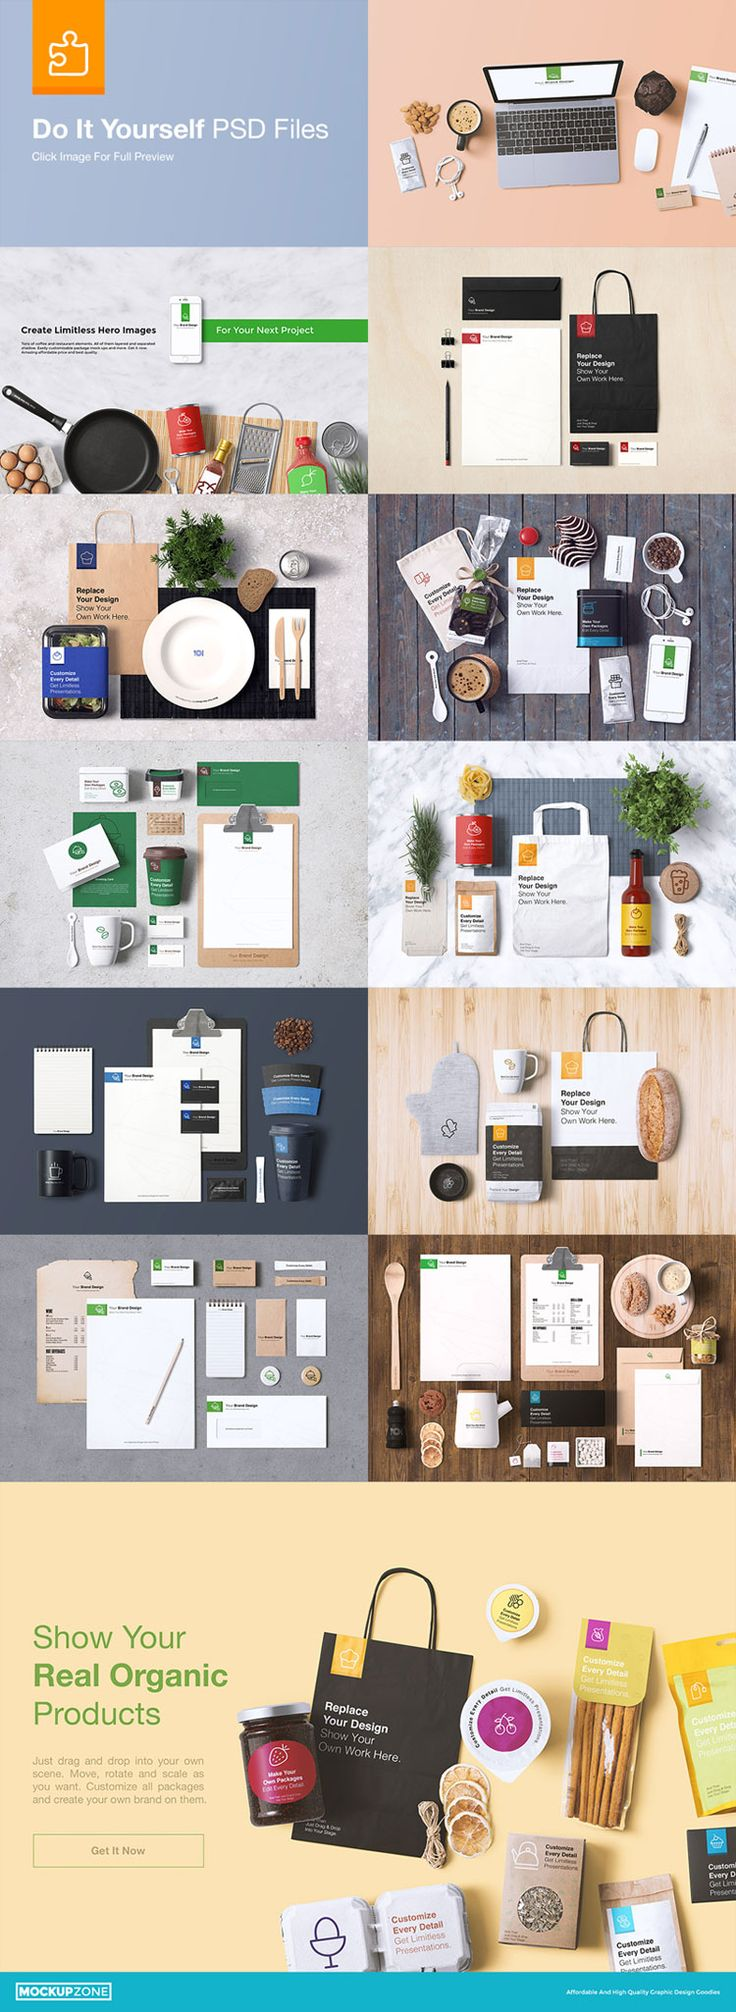 A Comprehensive Coffee Branding And Packages Mock Up From Mockup Zone